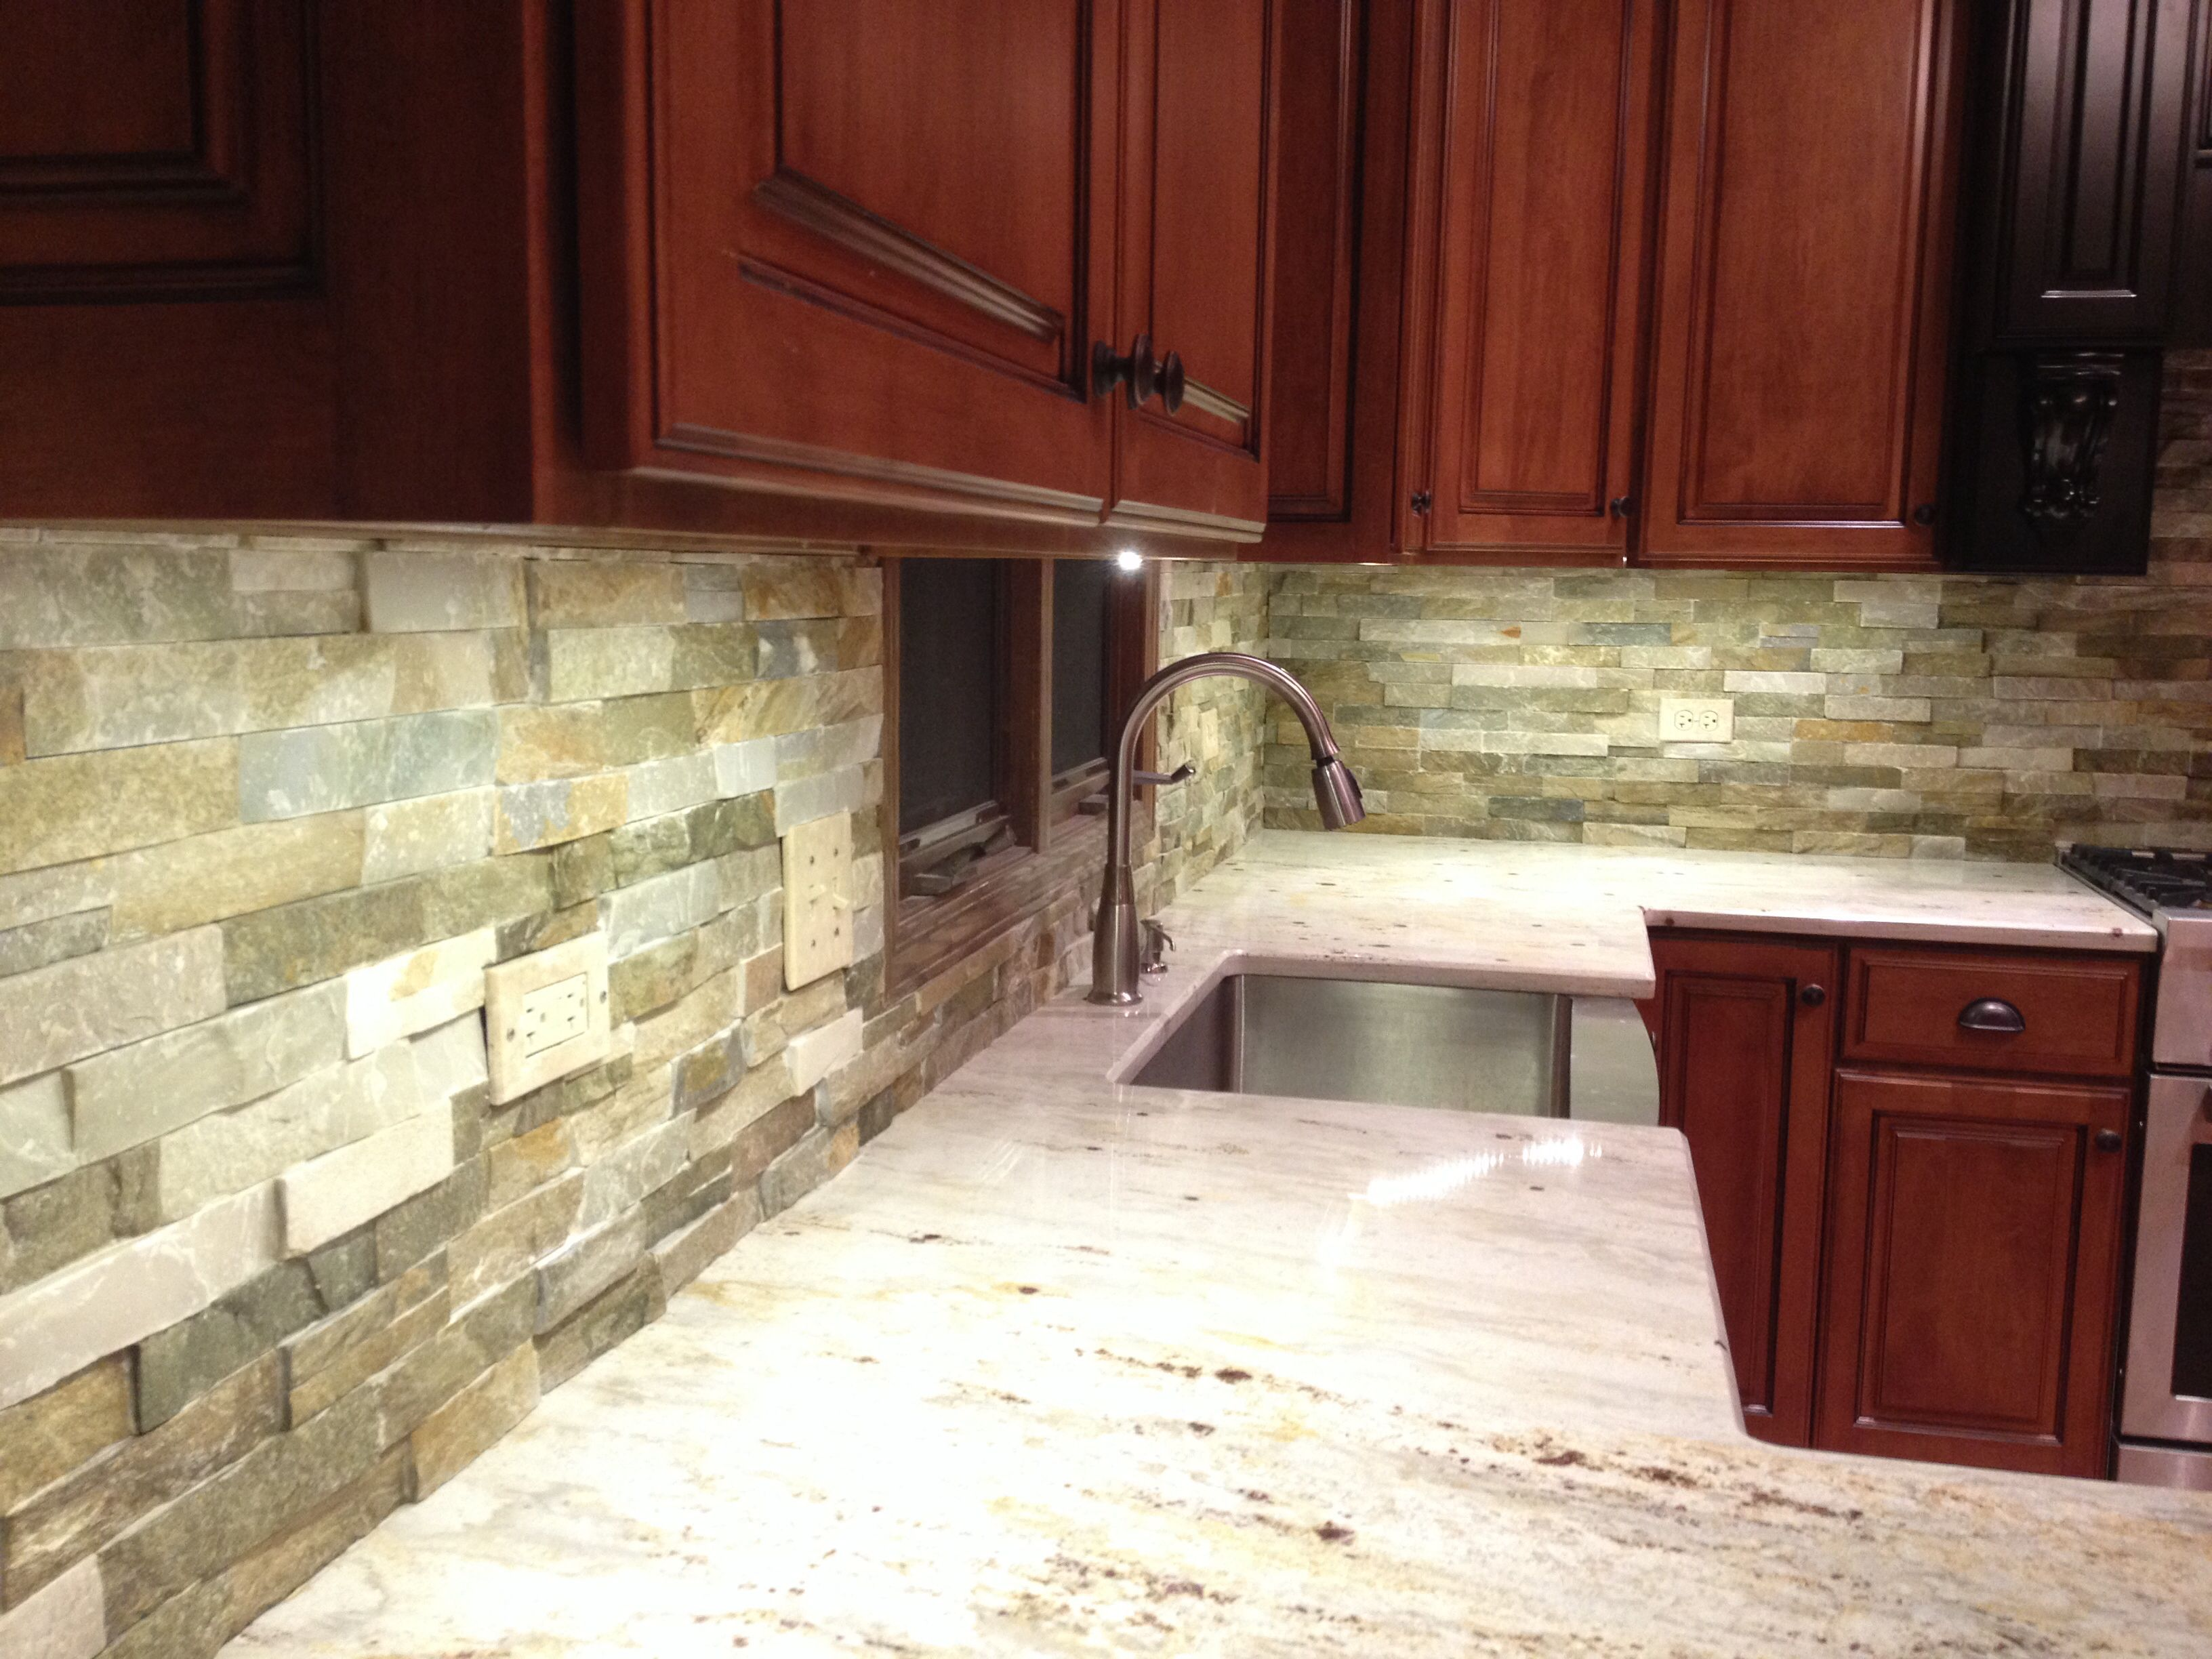 d2a507075b67ec2ad897251b11ee25e7 Stackable Stone Kitchen Backsplash Ideas on stone kitchen window ideas, stone walls ideas, bathroom tile patterns ideas, stone kitchen design ideas, stone fireplaces ideas, stone shower ideas, stone paint ideas, stone outdoor kitchen, stone tile, stone cottage kitchens, stone master bedroom ideas, stone landscaping ideas, old farmhouse kitchen ideas, stone rustic kitchens, rustic kitchen decorating ideas, dream kitchens ideas, stone kitchen island ideas, stone kitchen tables, stone kitchen cabinets, stone kitchen flooring,